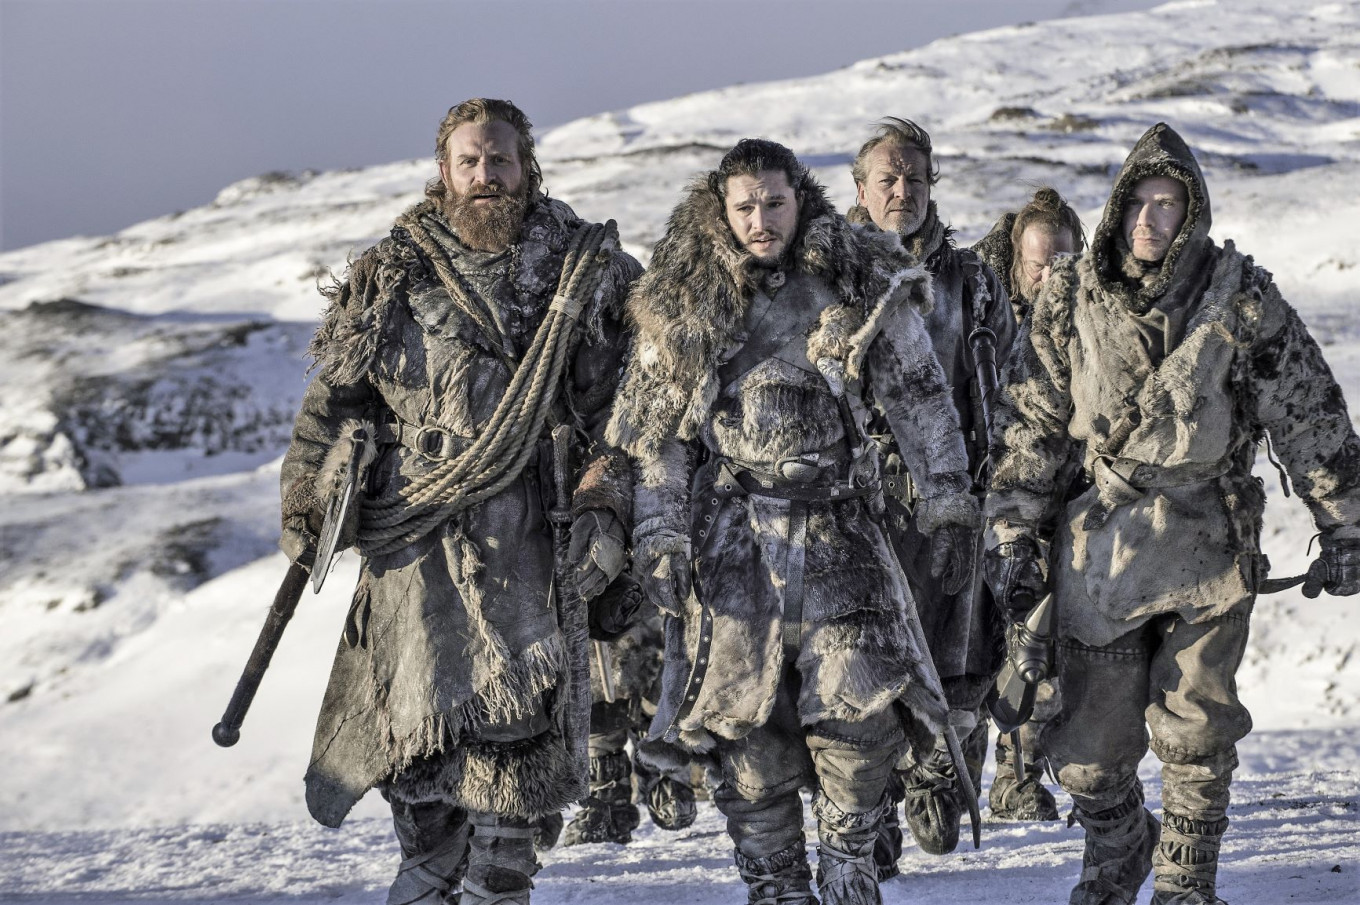 'Game of Thrones' Studio Tour to unleash interactive Westeros experience in Northern Ireland